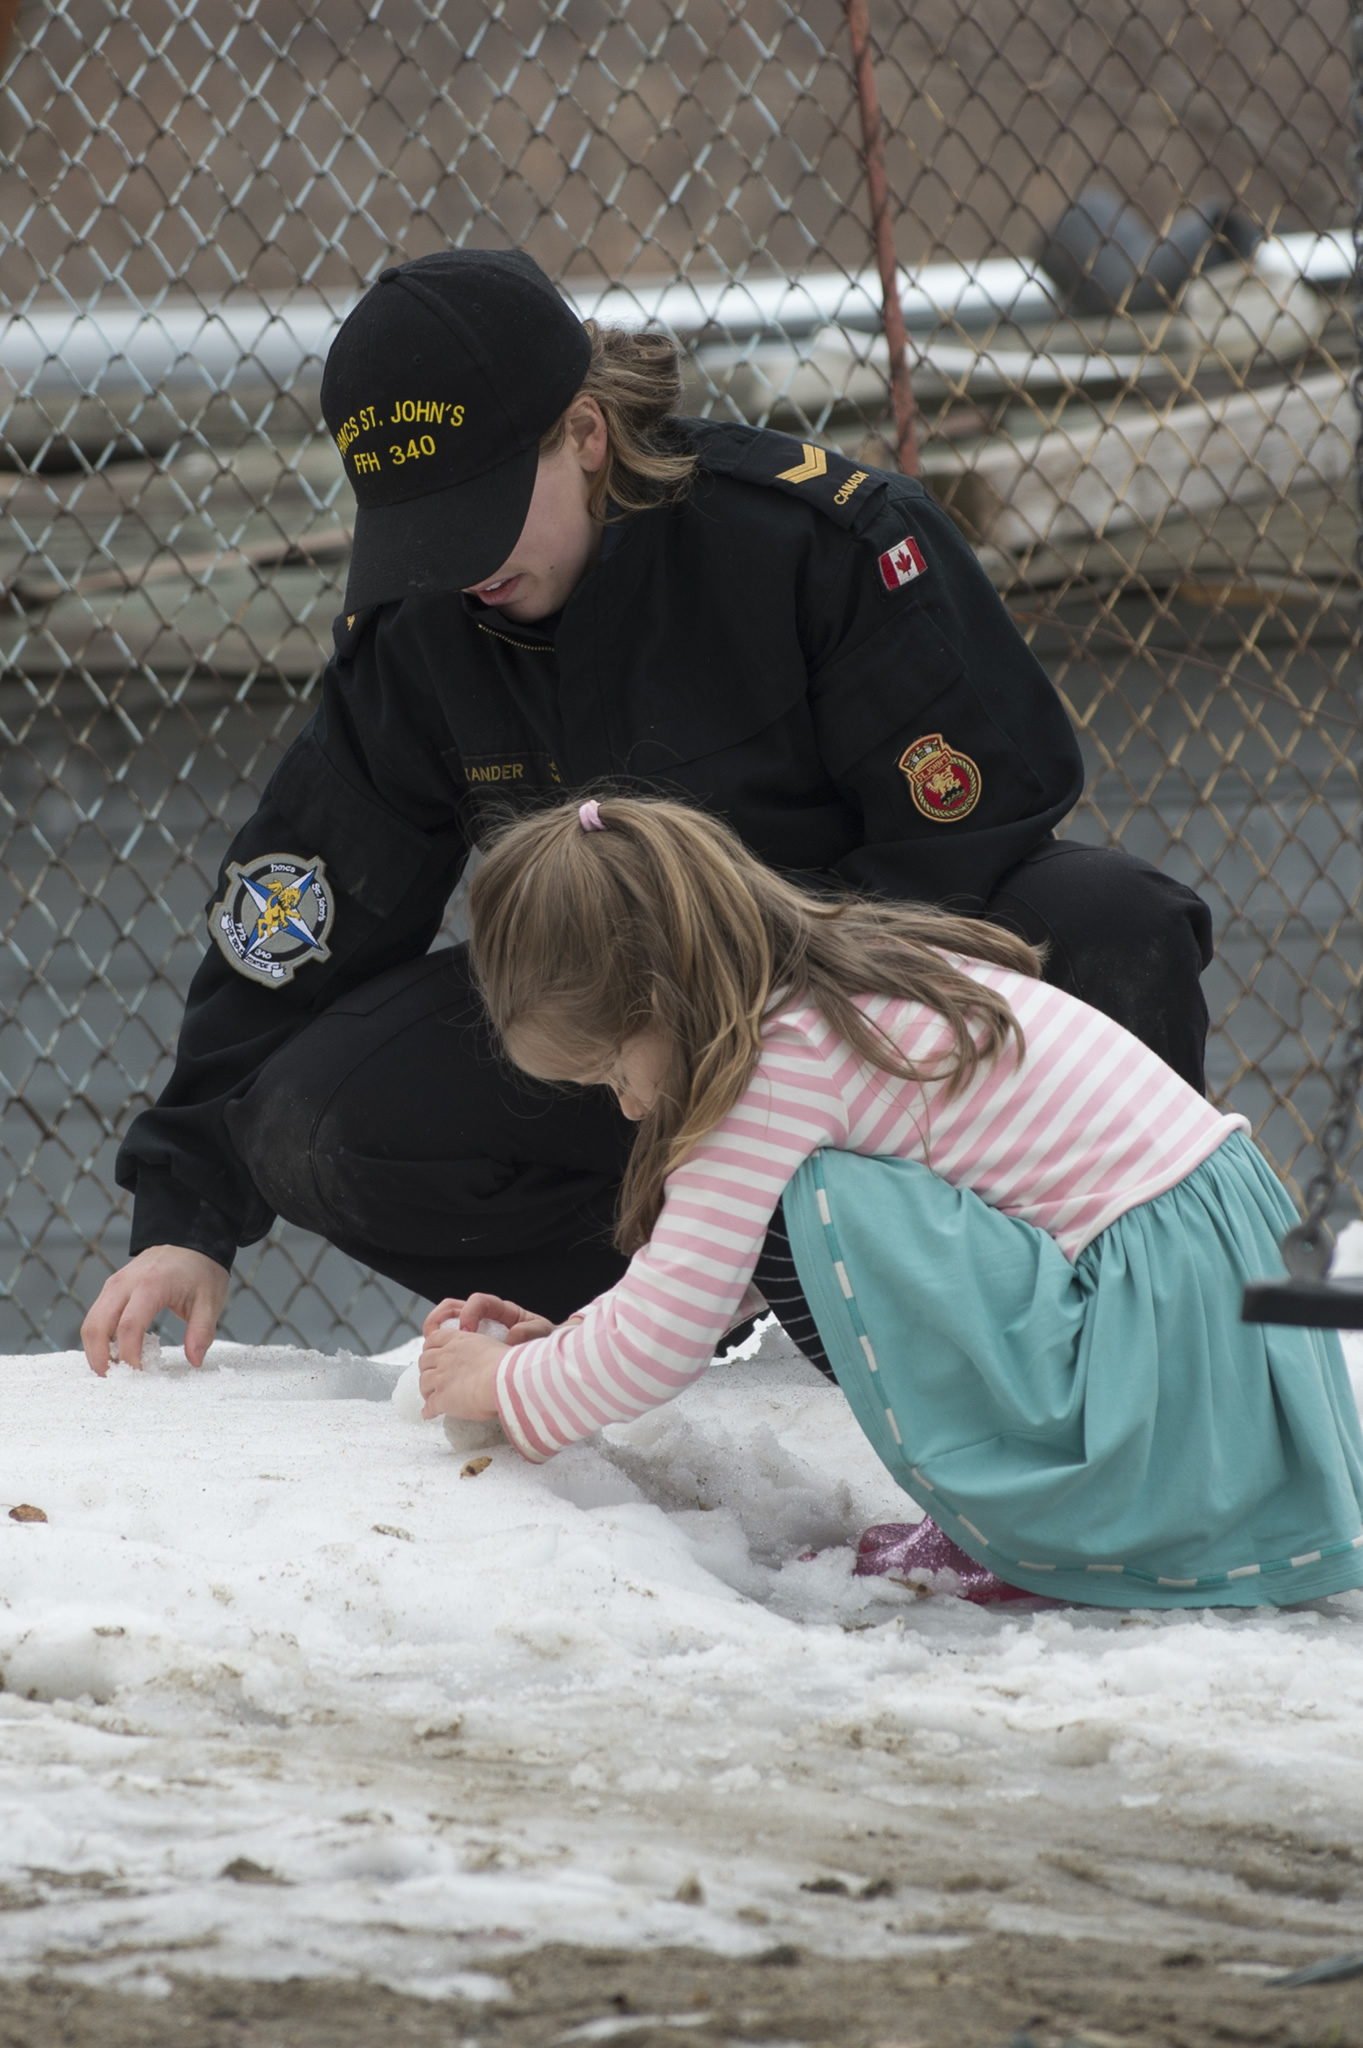 Leading Seaman Michaela Alexander, a Marine Systems Engineer, helps a little girl build a snowman at the Nightingales Children's Project at Cernavoda, Romania, during HMCS St. John's visit to Constanta on February 5, 2017.